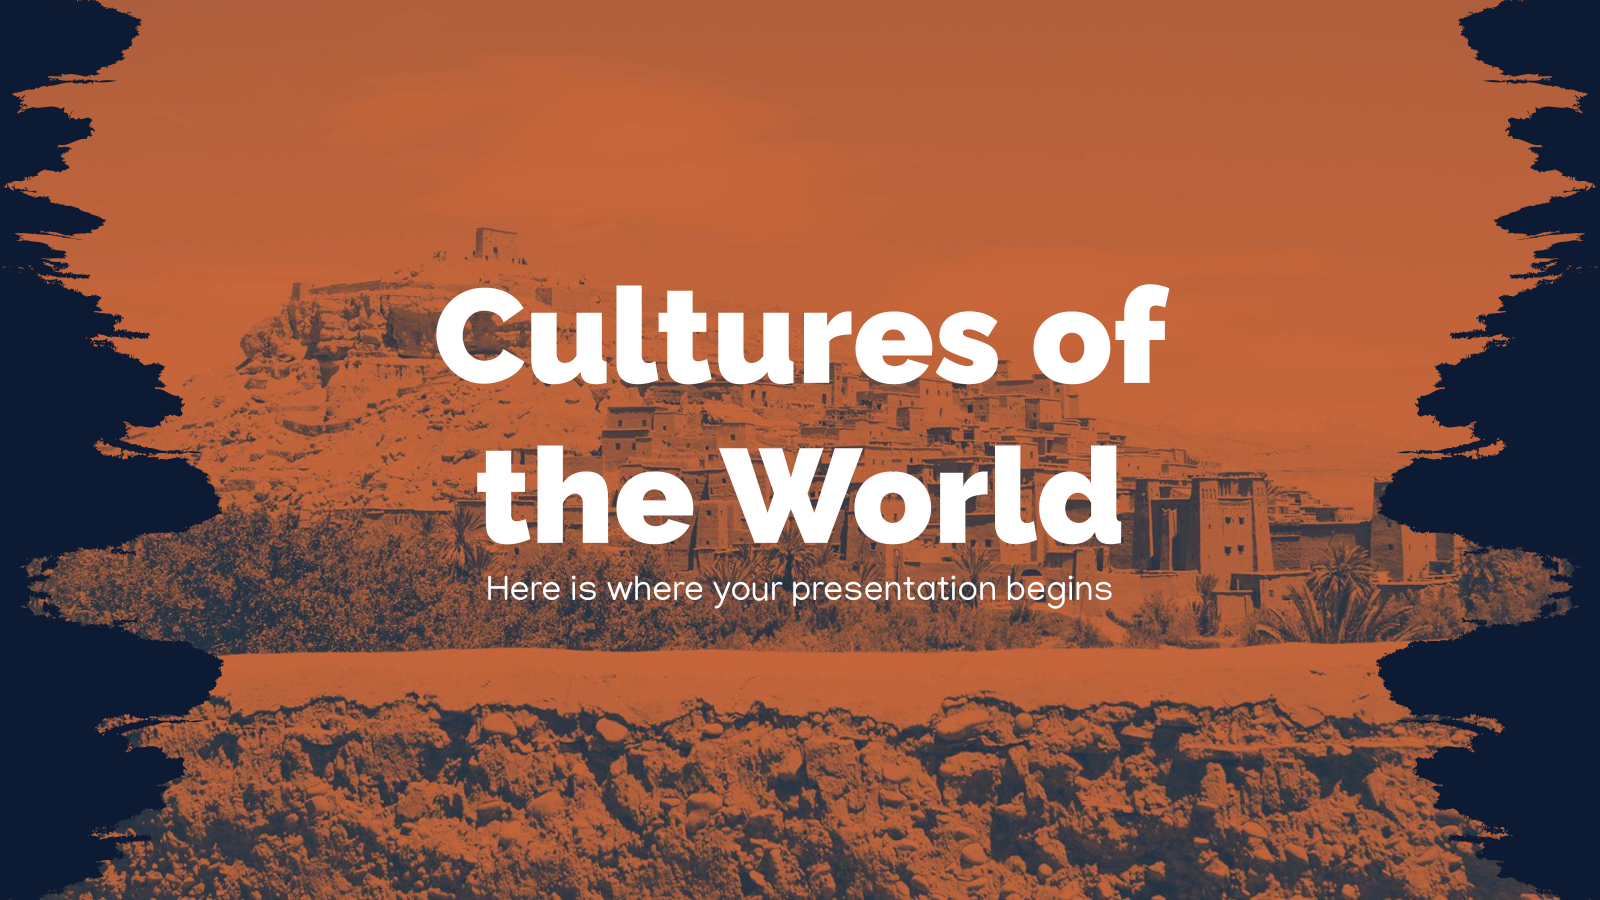 Cultures of the World presentation template